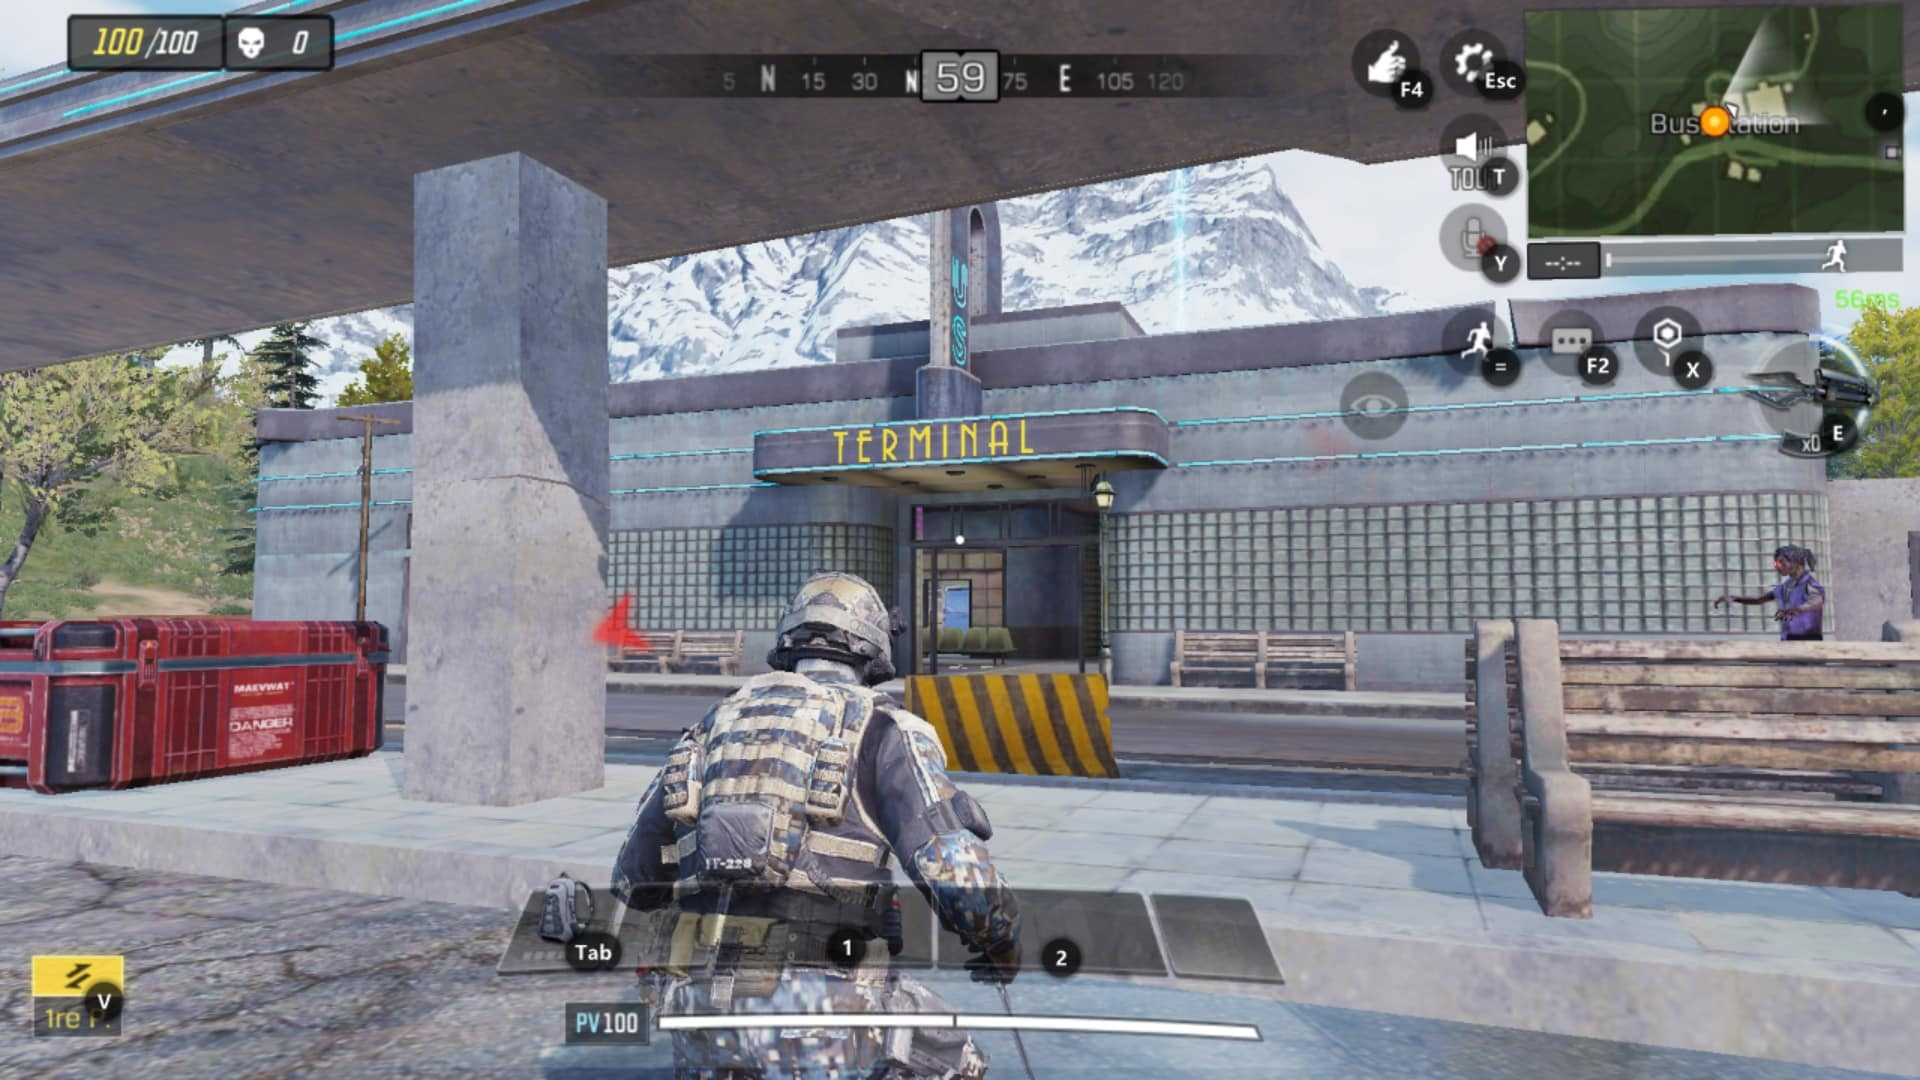 bus-station-ville-call-of-duty-mobile-carte-saison-1-isolated